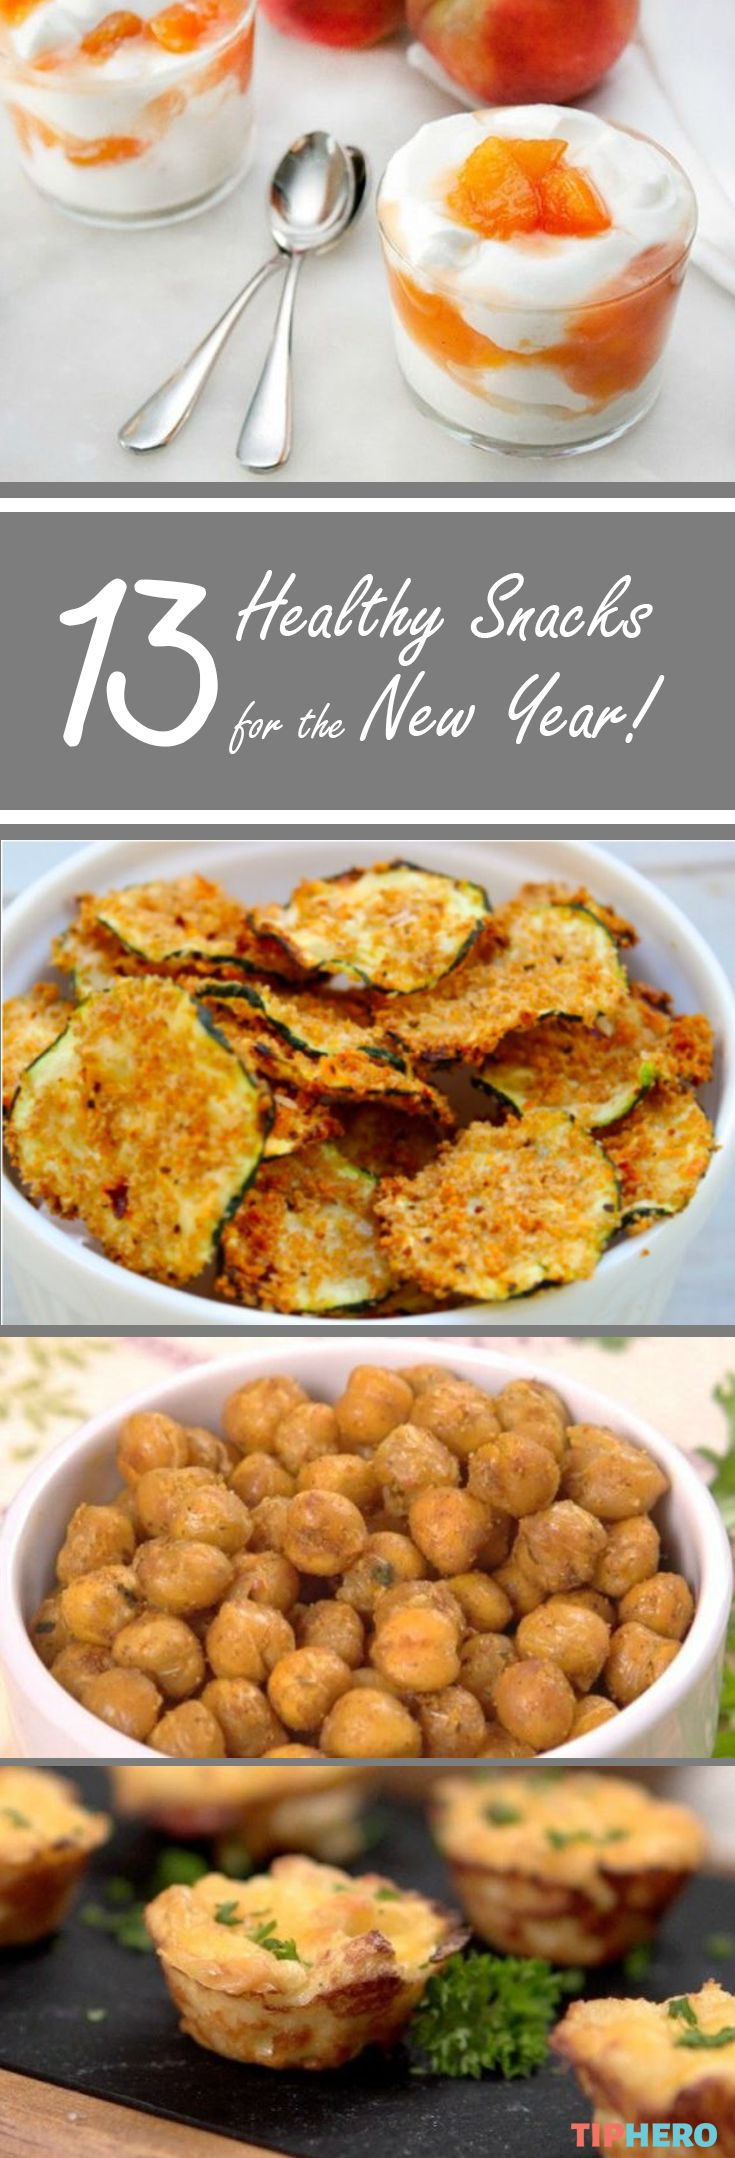 Keep Your New Year's Resolution With These 13 Healthy Snacks! Looking to get healthy this year? Here's a collection of recipes for healthy snacks that are big on flavor! Click for the recipes and get snacking!